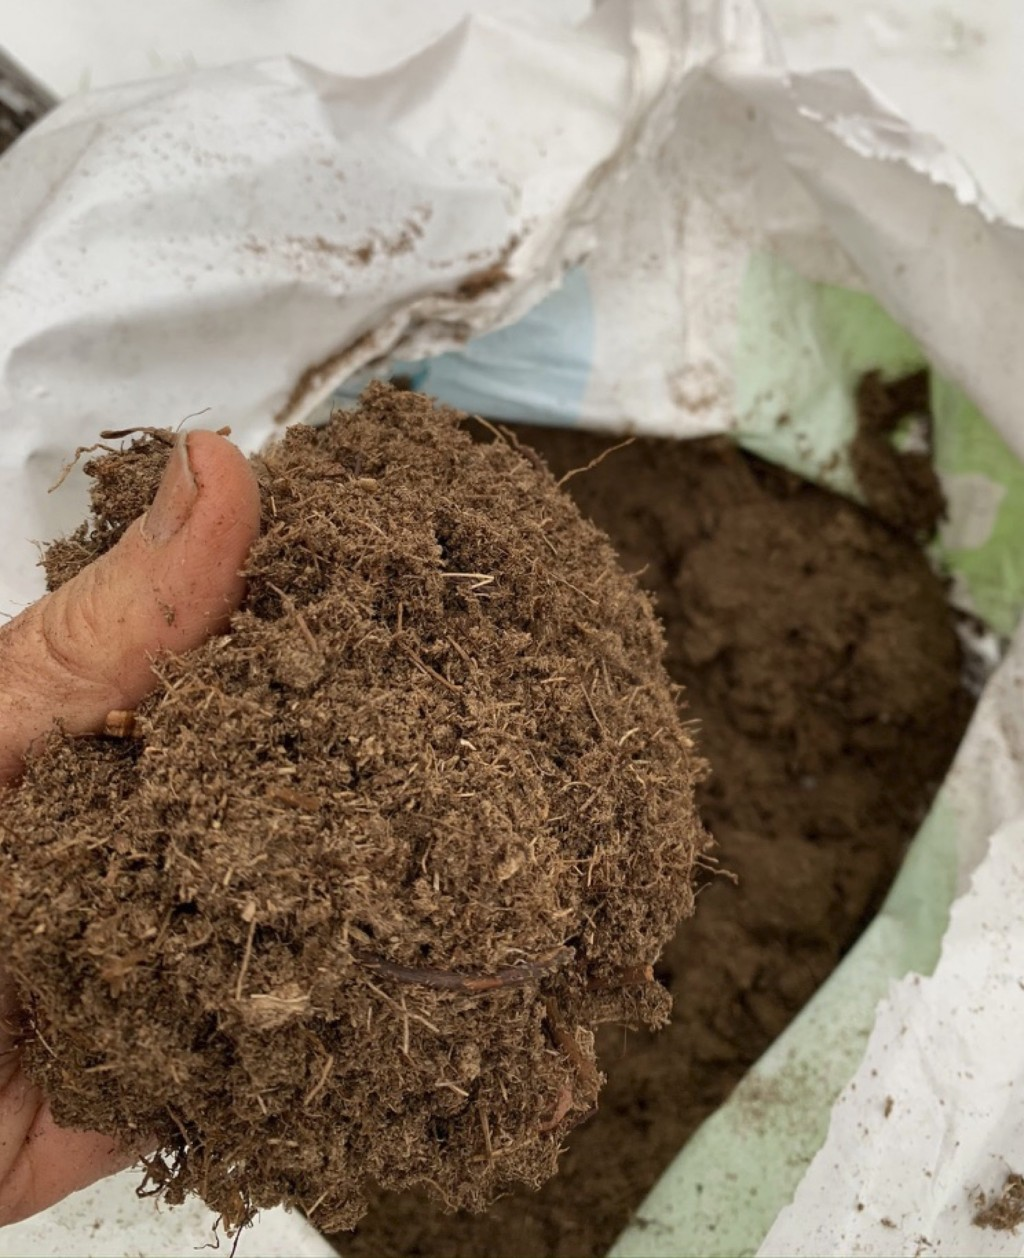 This undated photo shows a handful of peat moss in New Paltz, N.Y. Although peat moss is a useful soil amendment, such as in potting mixes, it is not ...